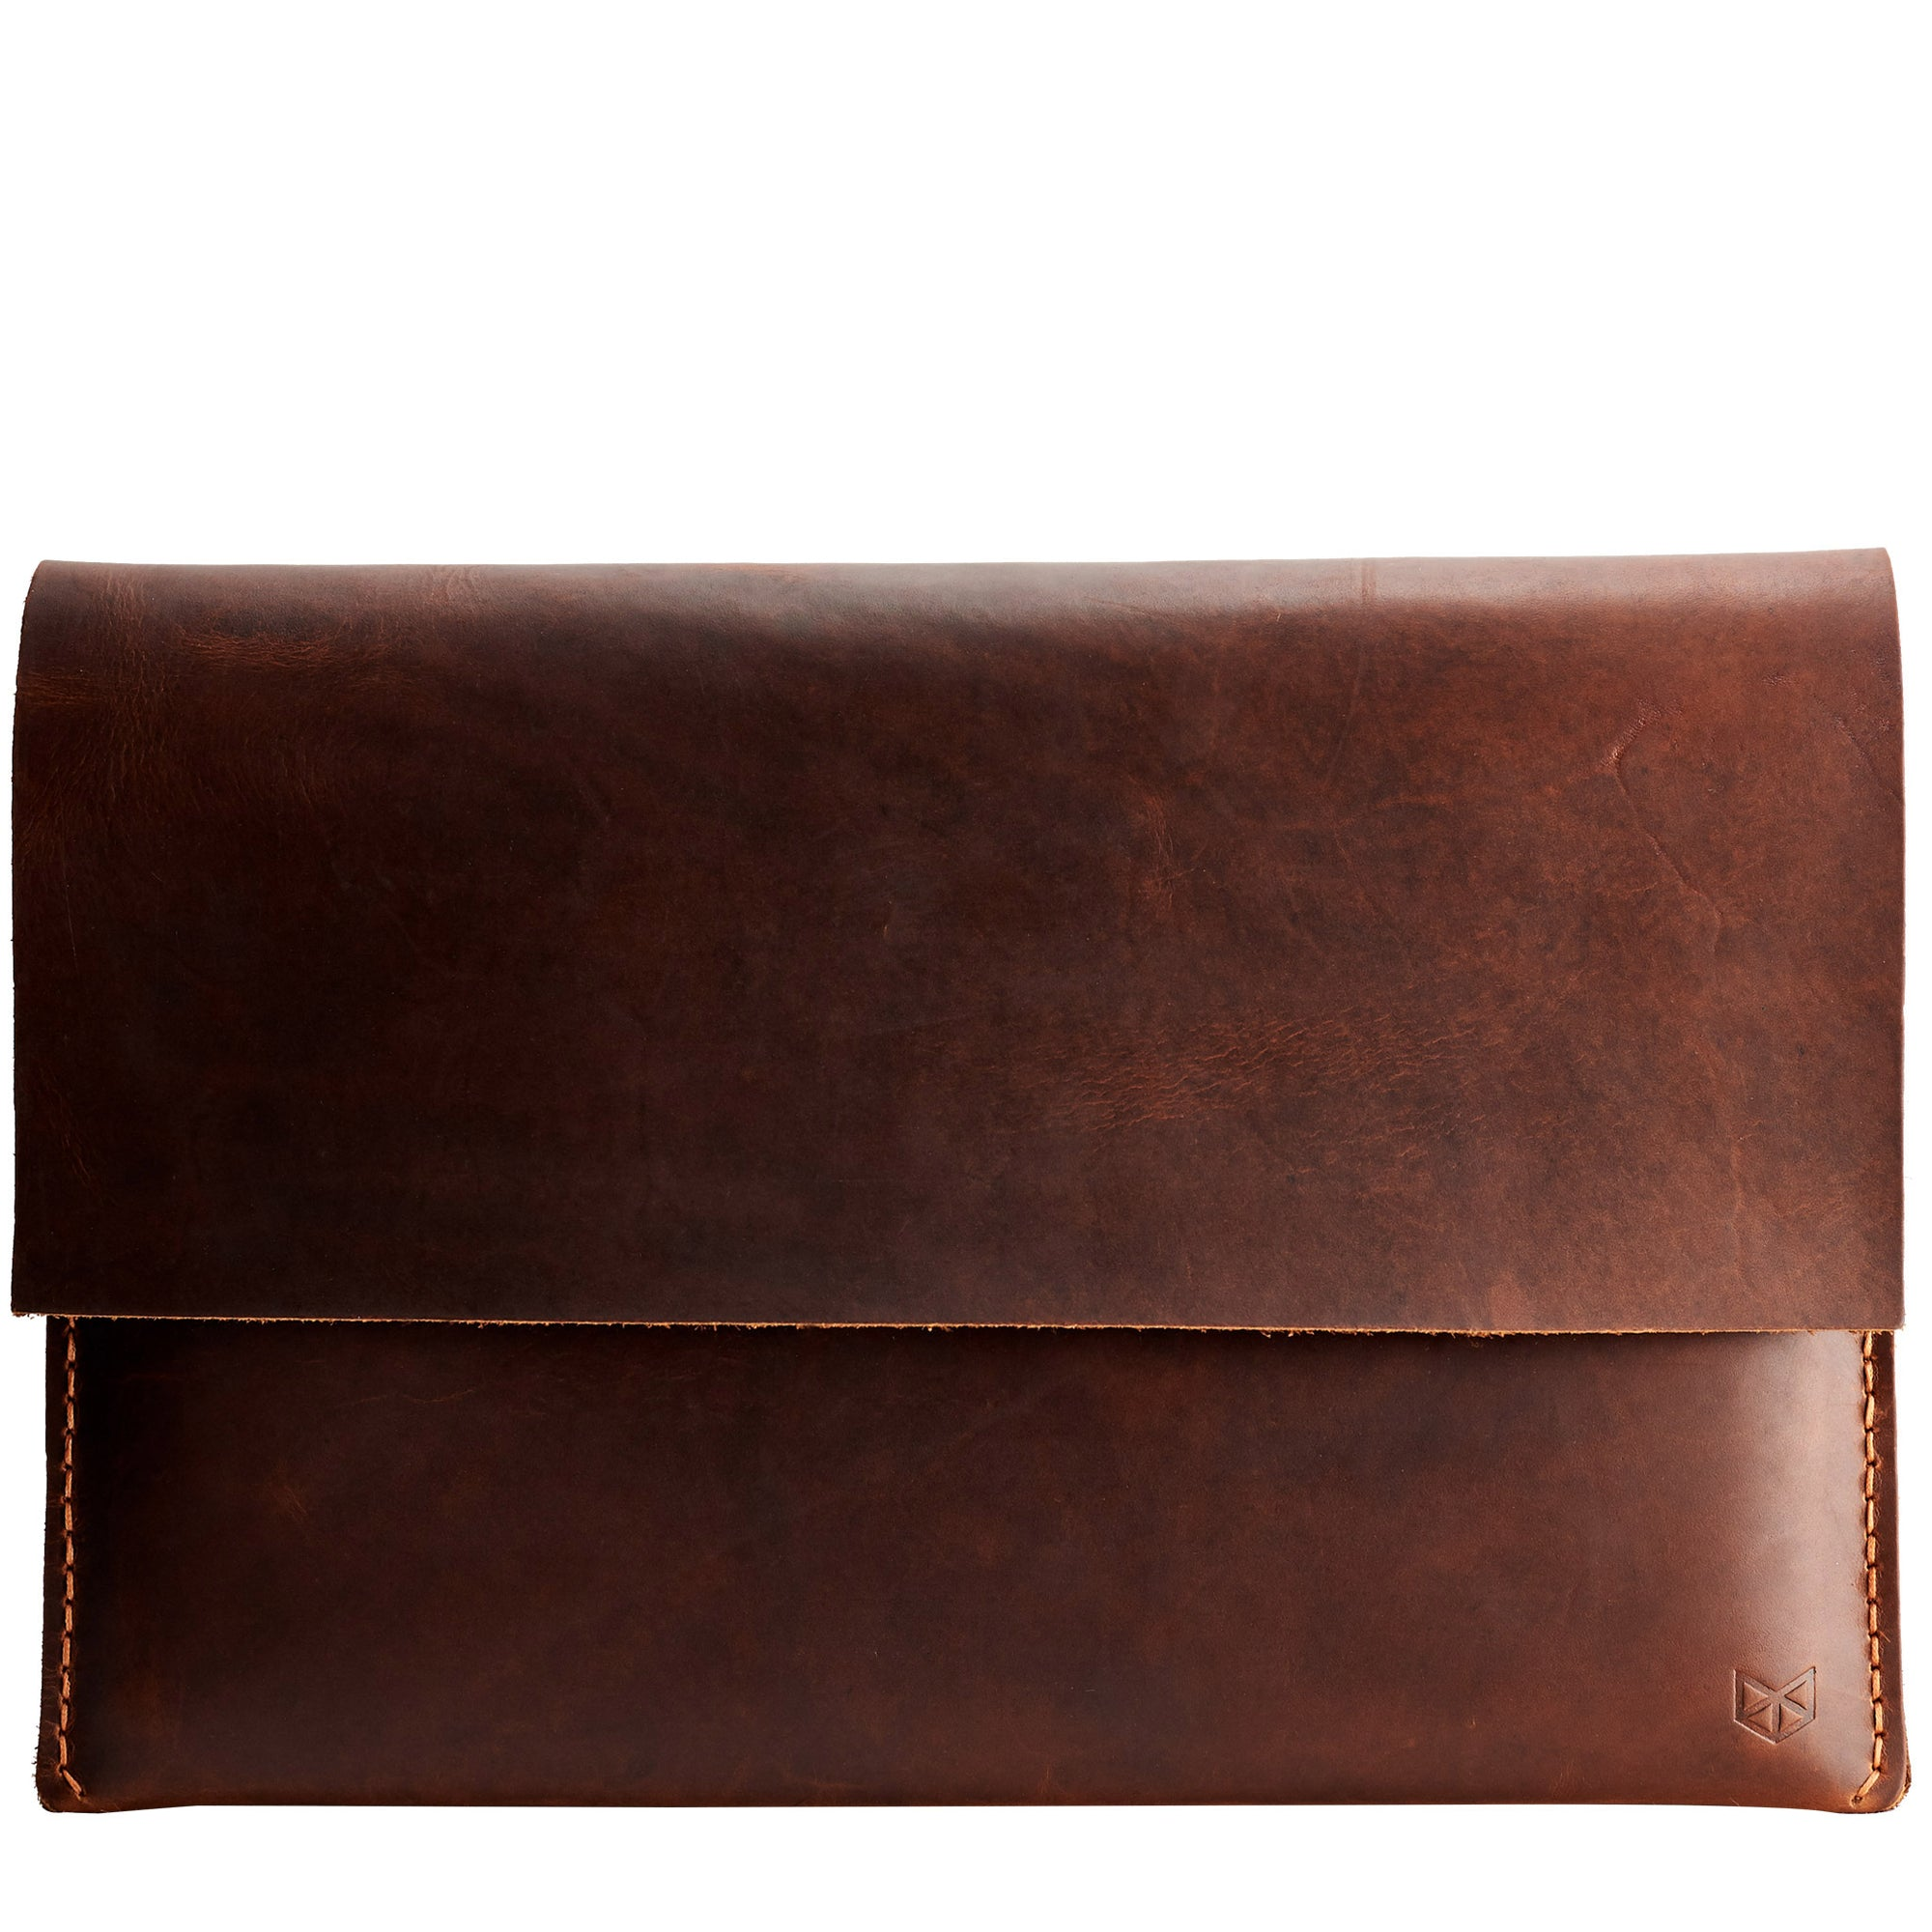 Leather Lenovo Yoga Tan Sleeve Case by Capra Leather